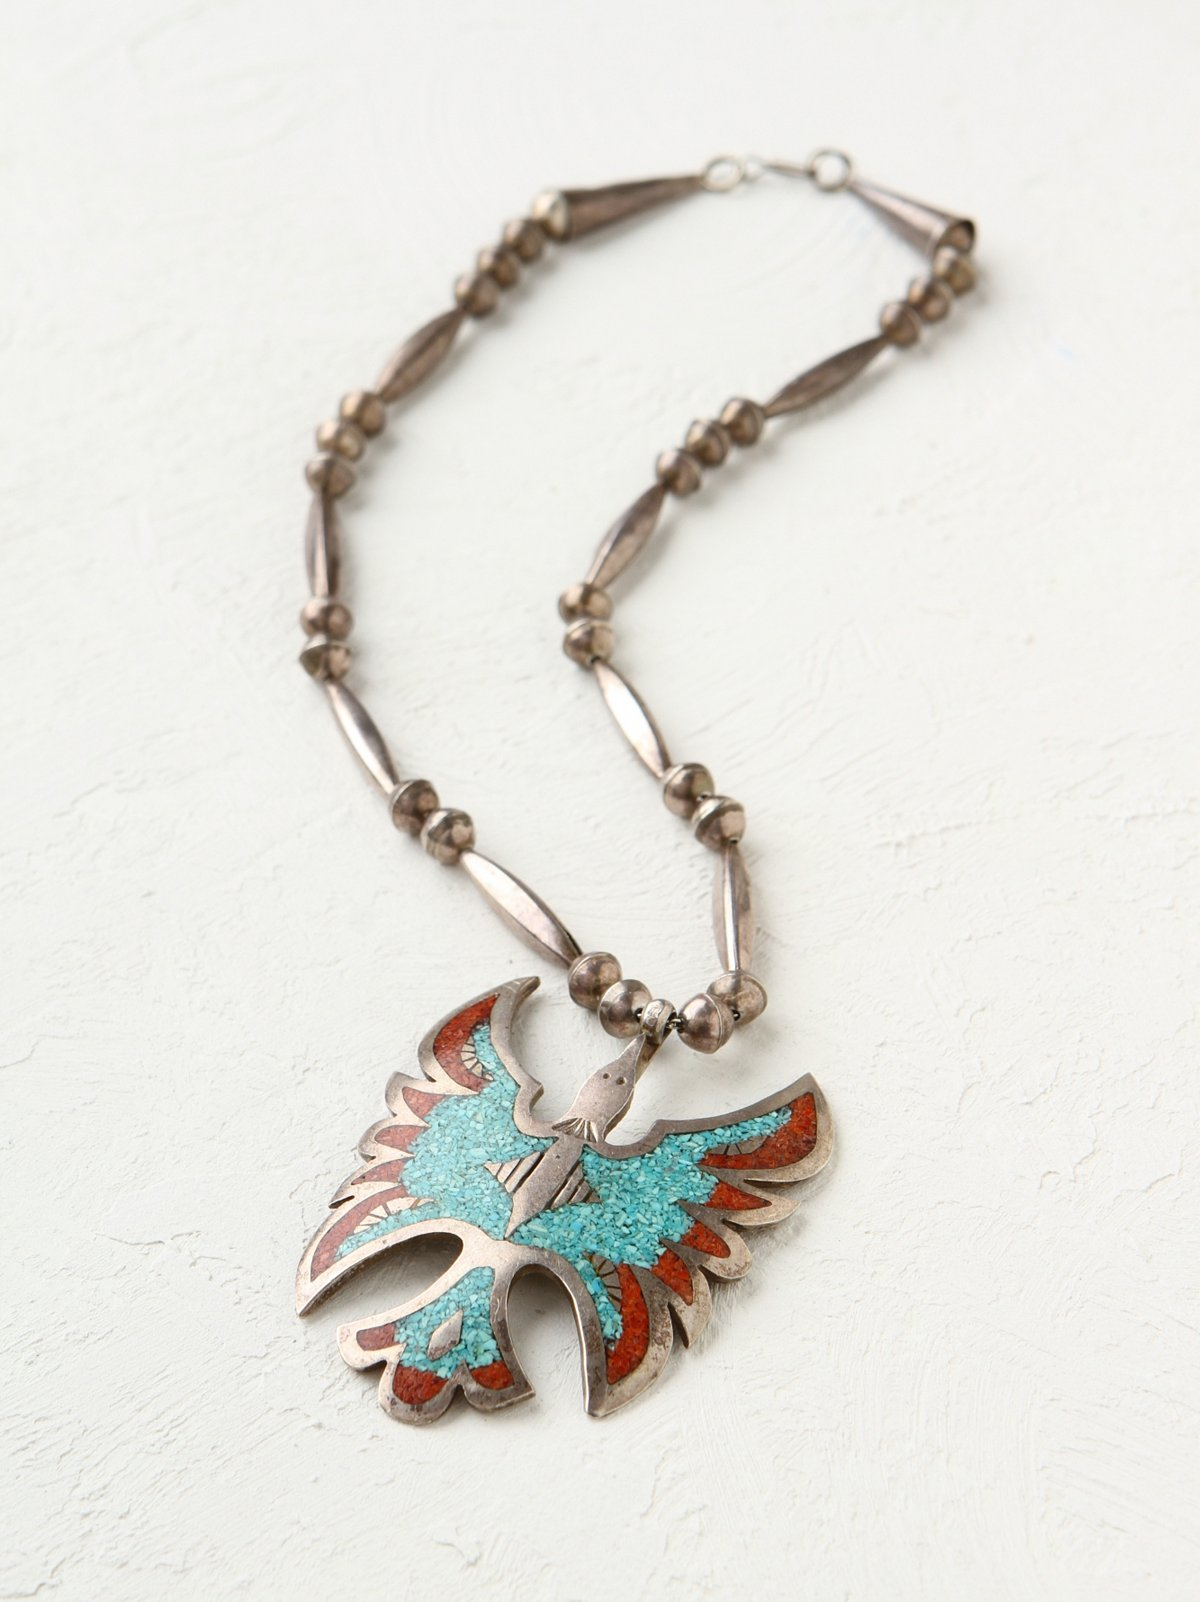 Vintage 70s Thunderbird Necklace